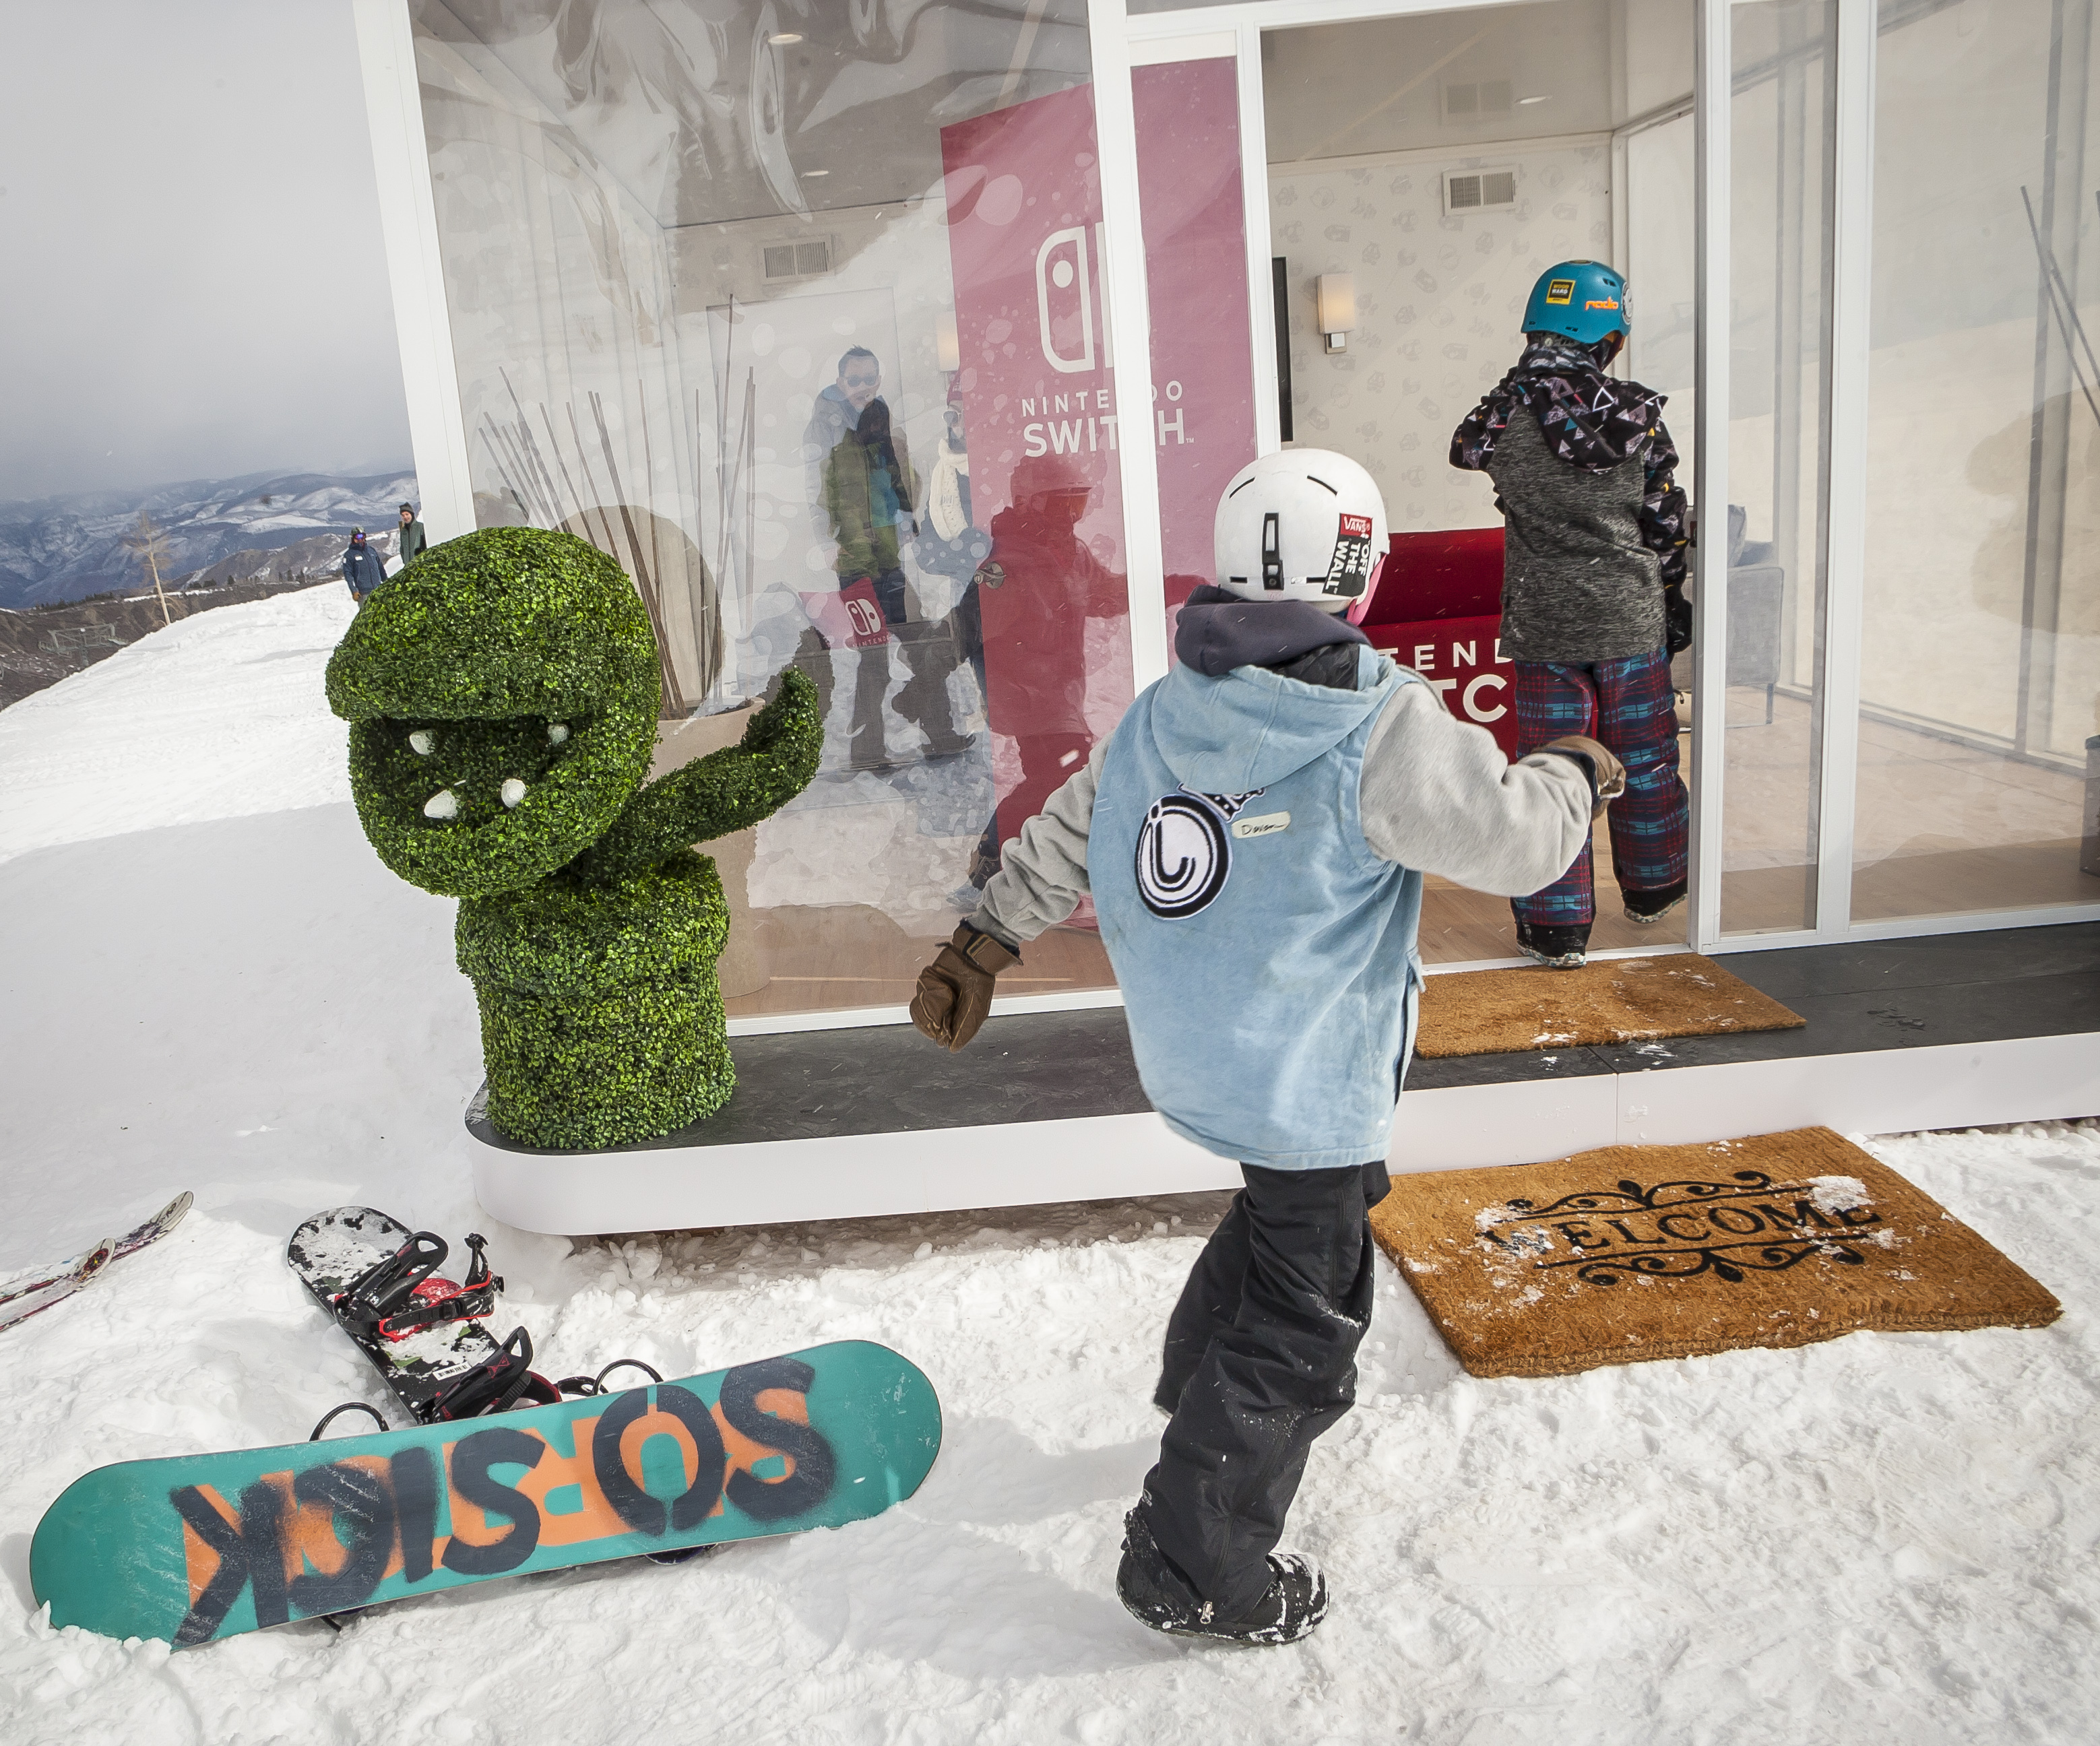 In this photo provided by Nintendo of America, kids discover the Nintendo Switch in Unexpected Places at Snowmass Ski Resort in Aspen, Colorado, on Feb. 27. A home gaming system with the portability of a handheld, the Nintendo Switch system launches worldwide on March 3. (Photo: Nintendo of America)